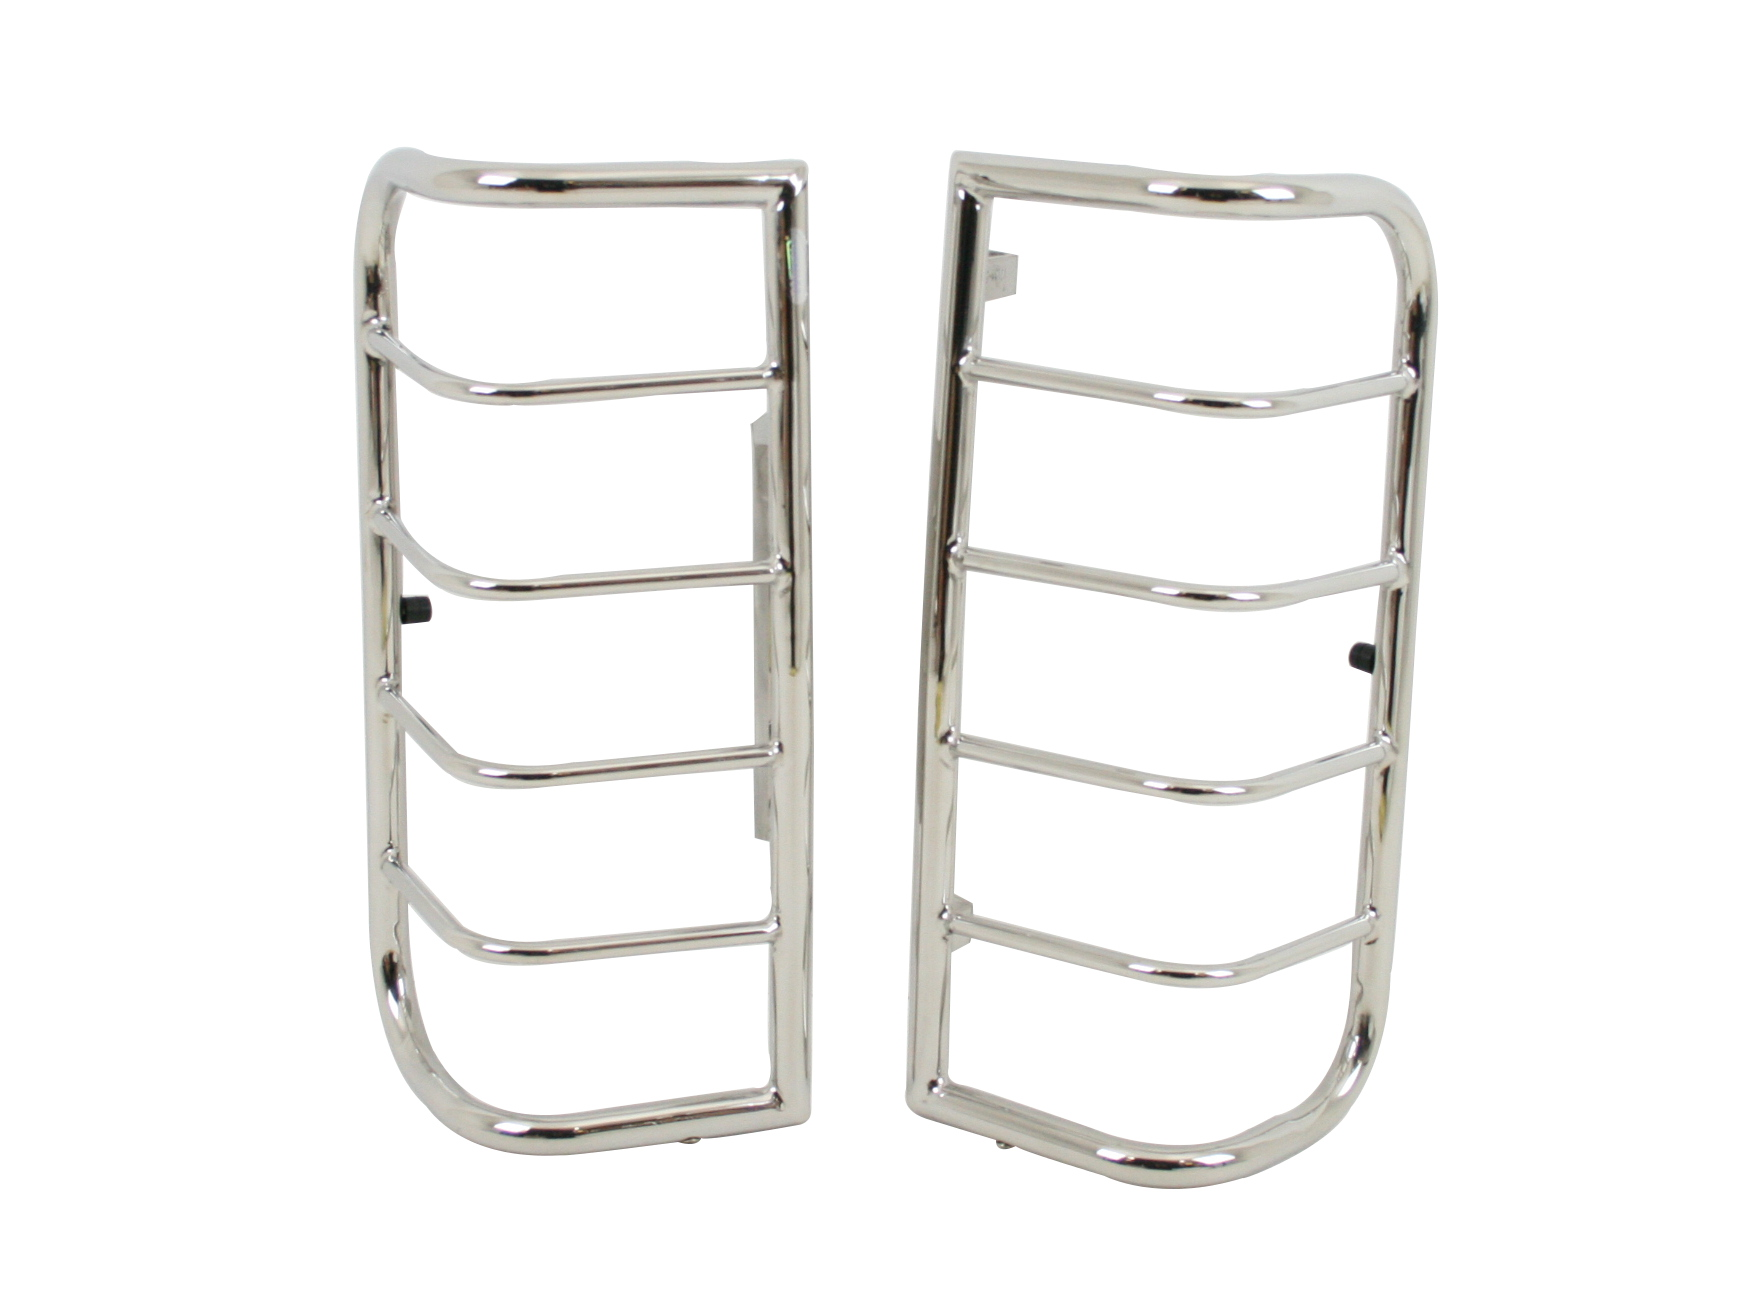 Hummer H3 Chrome Trim Set Phare Miroir Poignee Protection